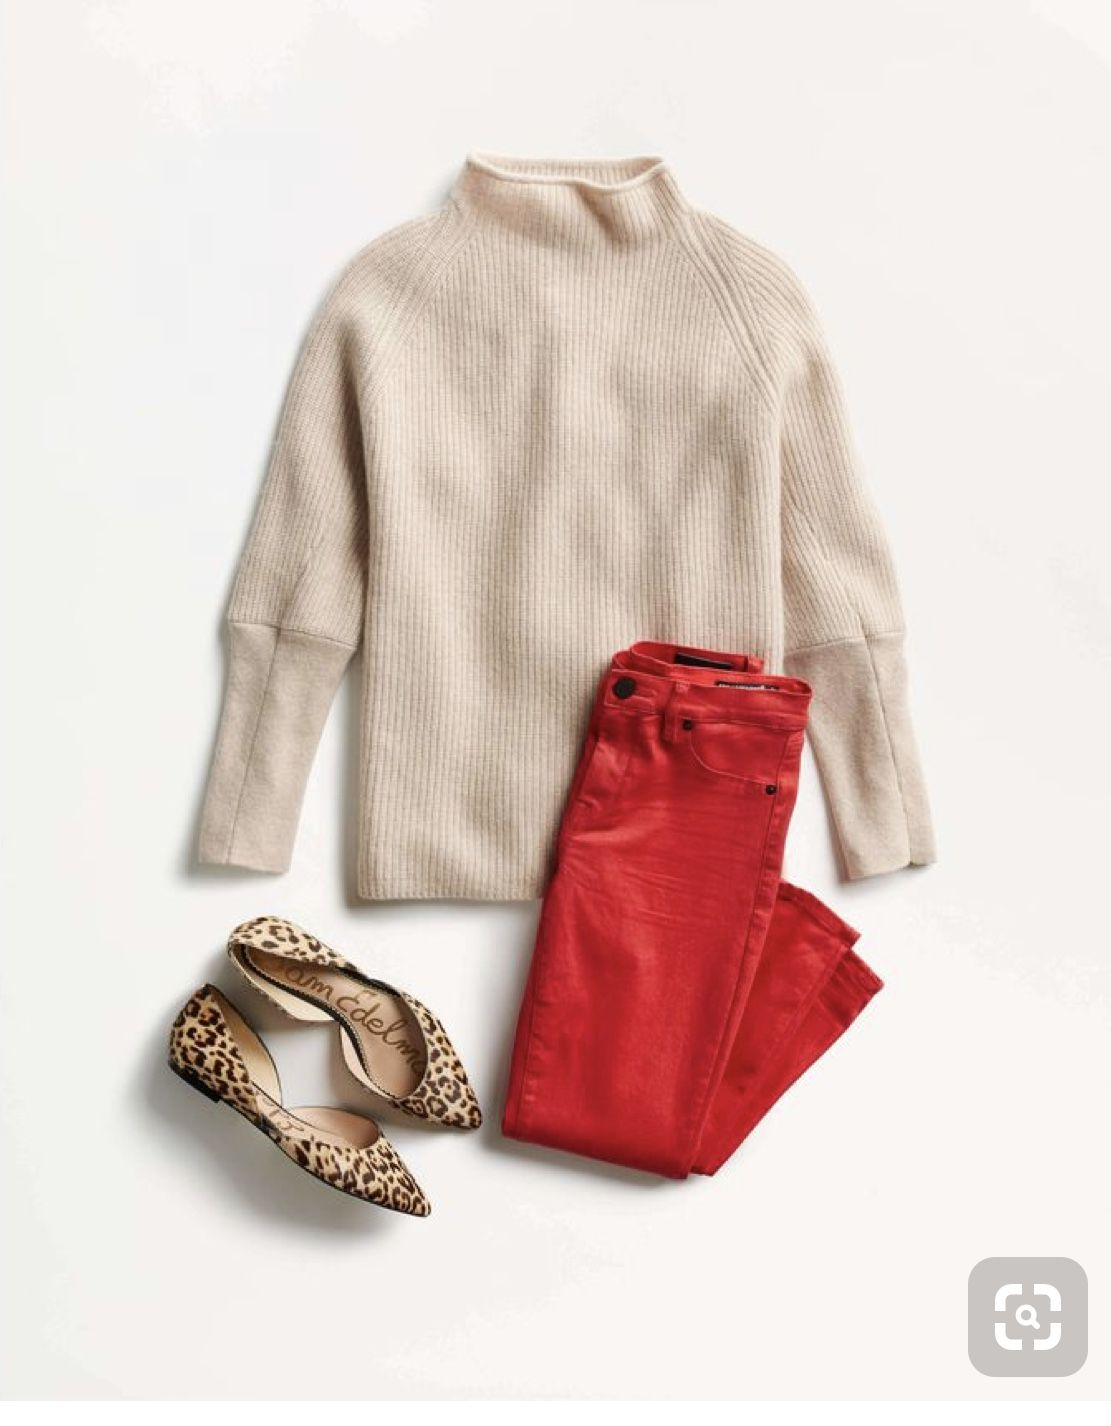 Sweater and shoes   Stitch fix outfits, Red pants, Style